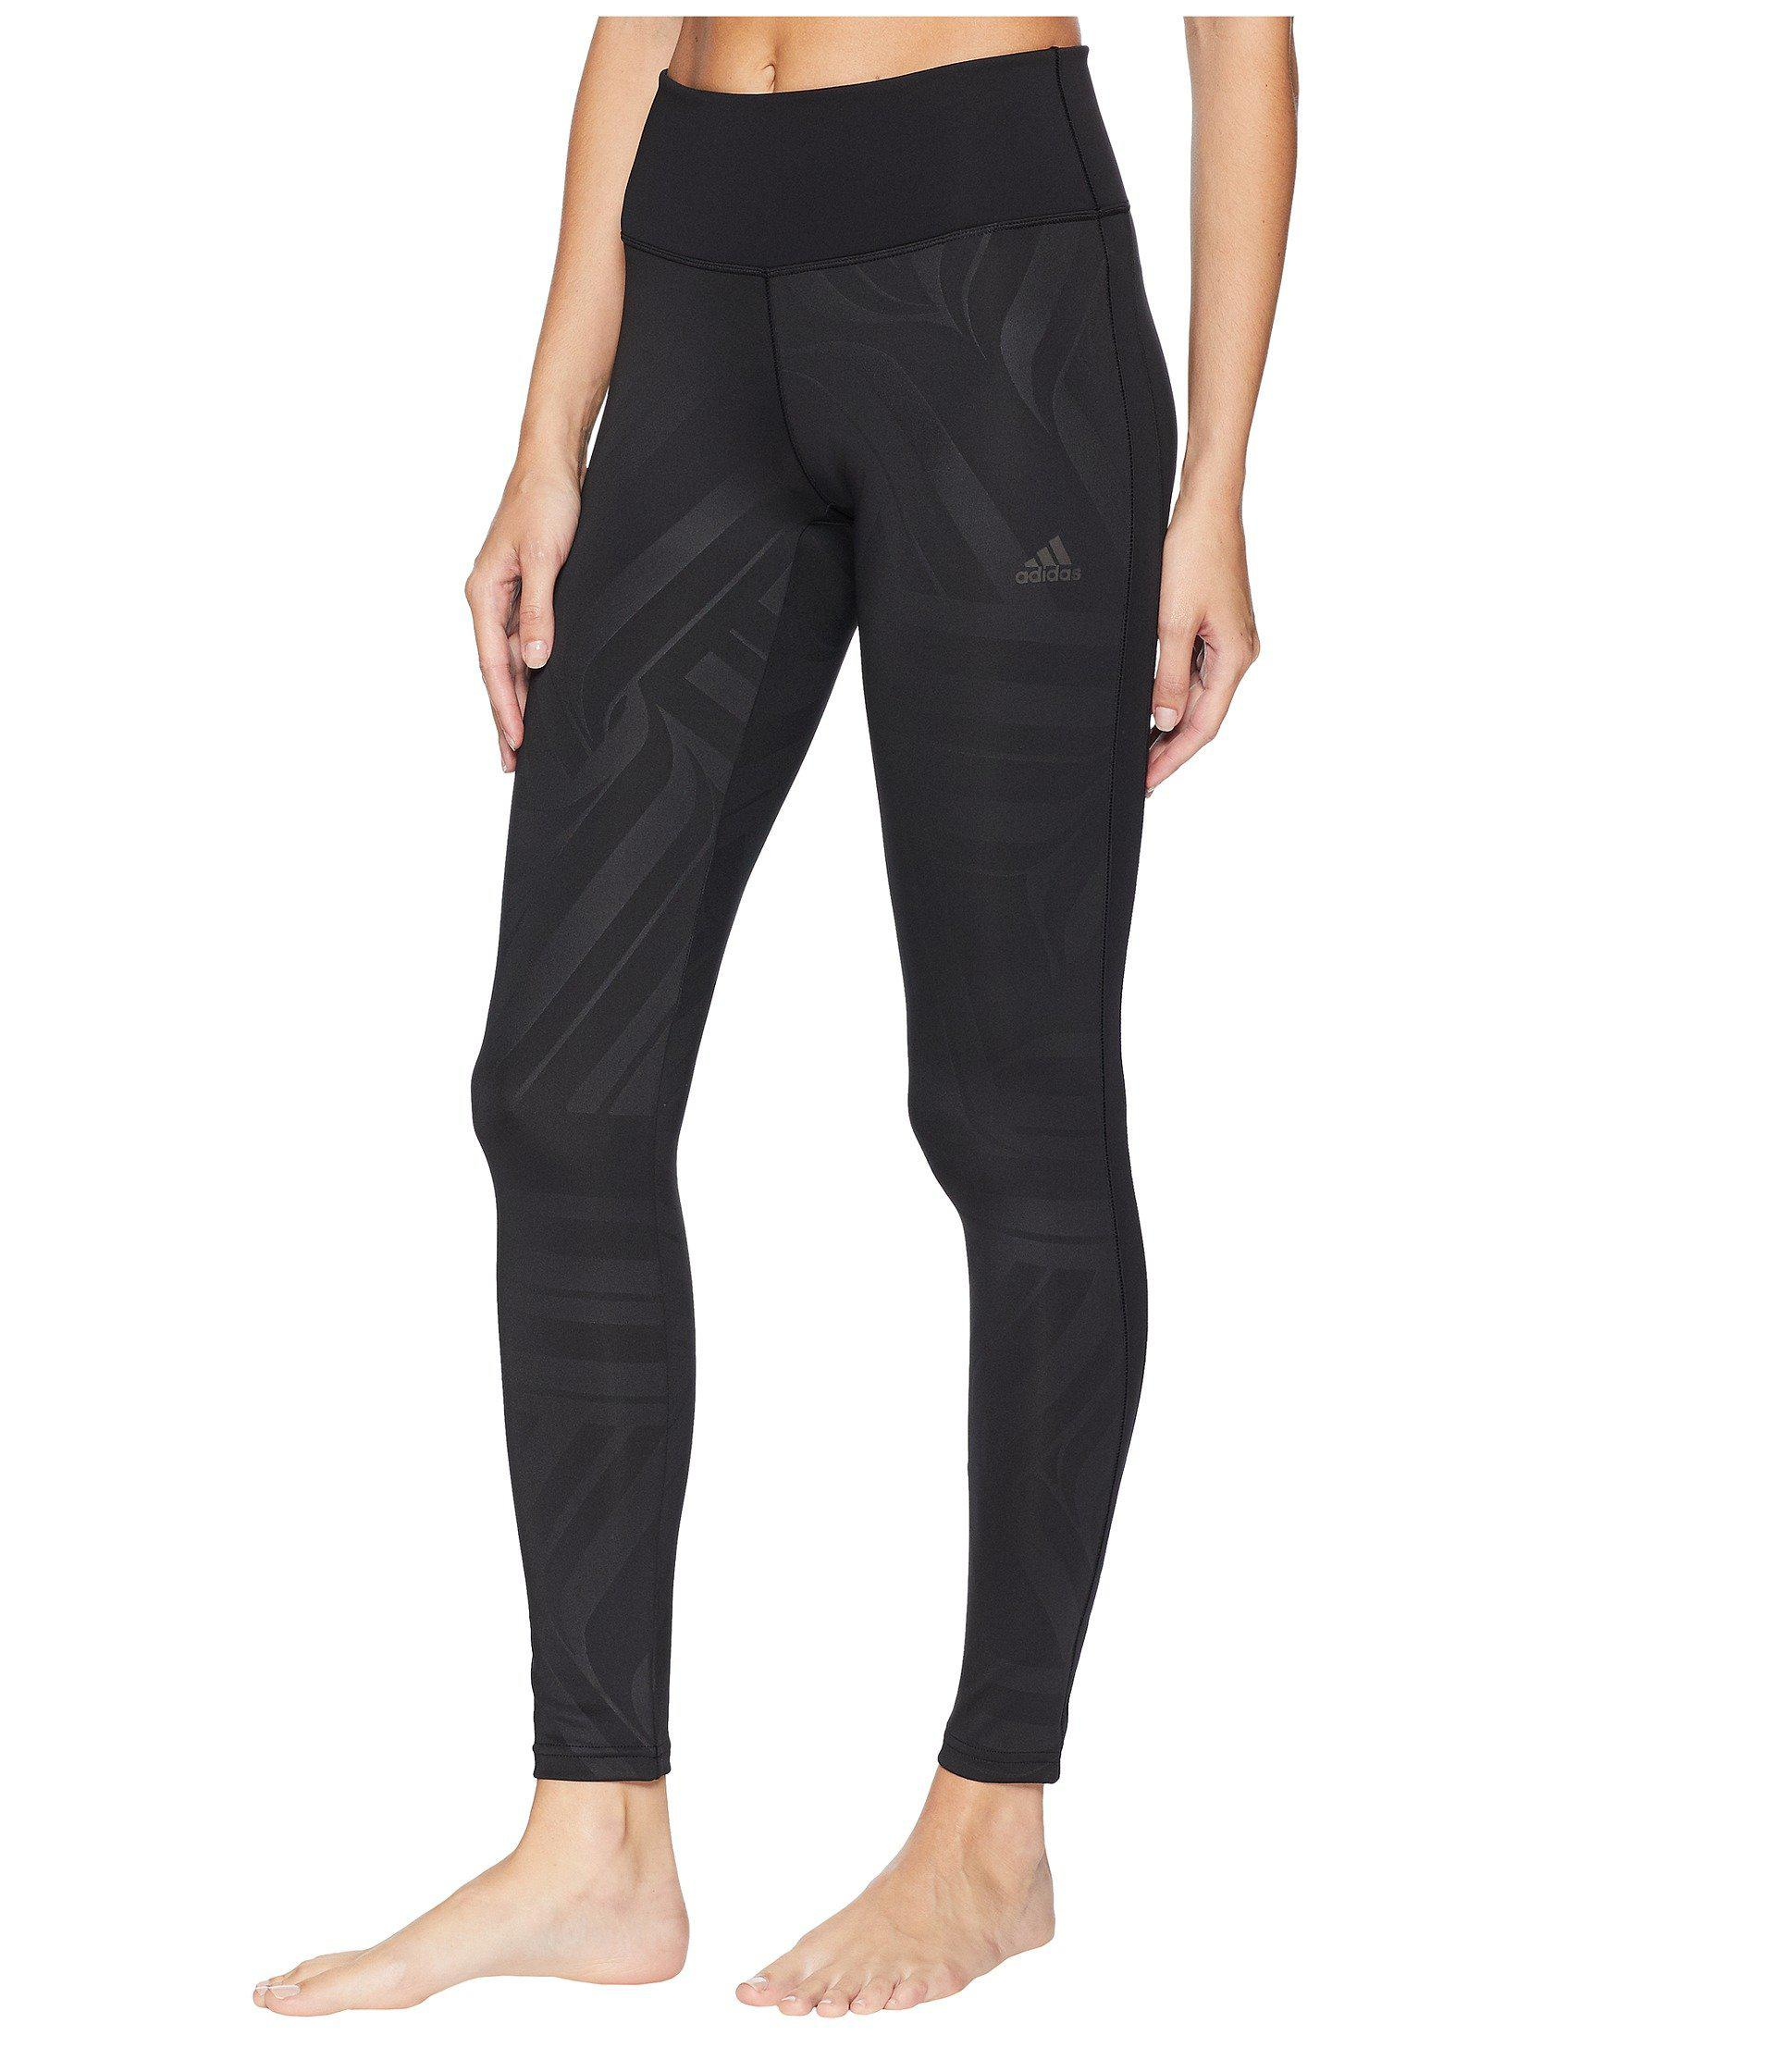 bf1e6483284 adidas Designed-2-move High-rise Long Tights in Black - Lyst